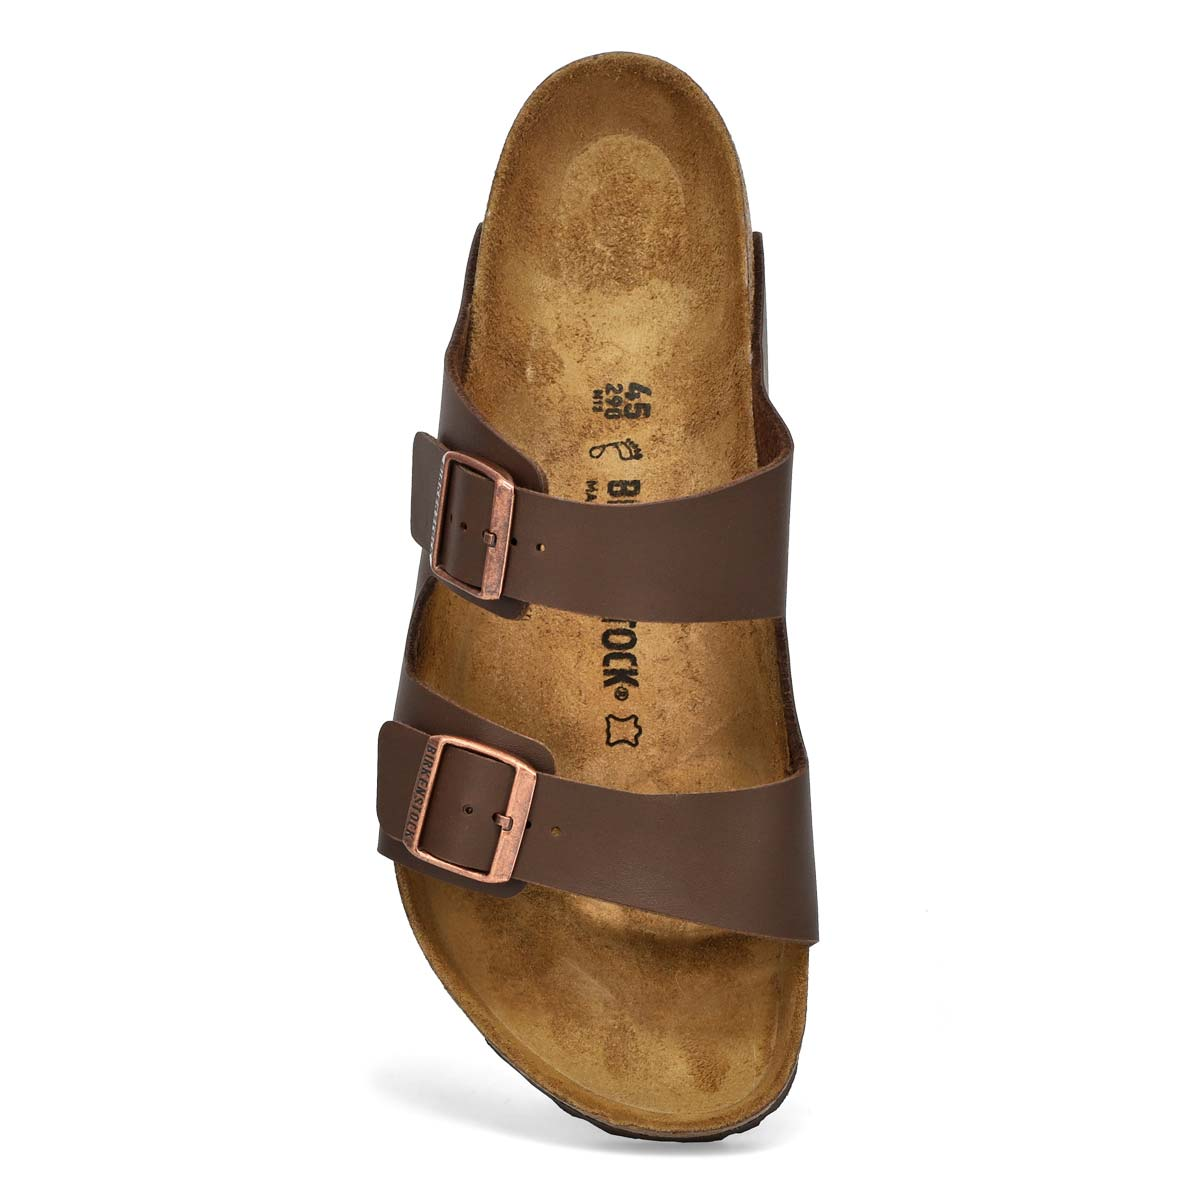 Mns Arizona brown 2 strap sandal